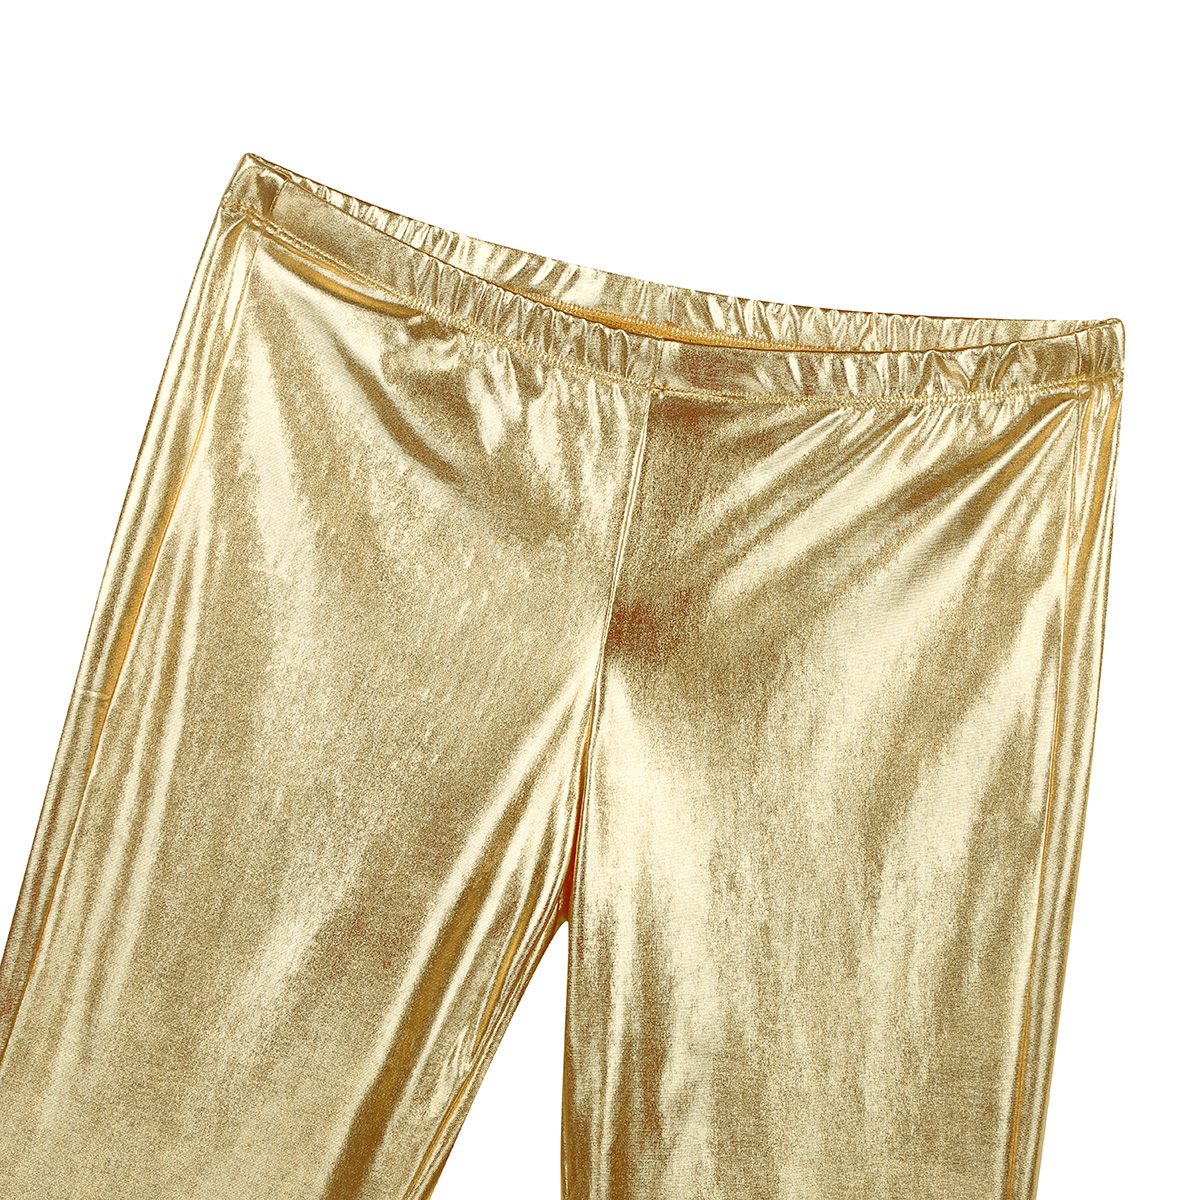 ChicTry Adults Mens Shiny Metallic Disco Pants with Bell Bottom Flared Long Pants Dude Costume Trousers for 70's Theme Parties 26